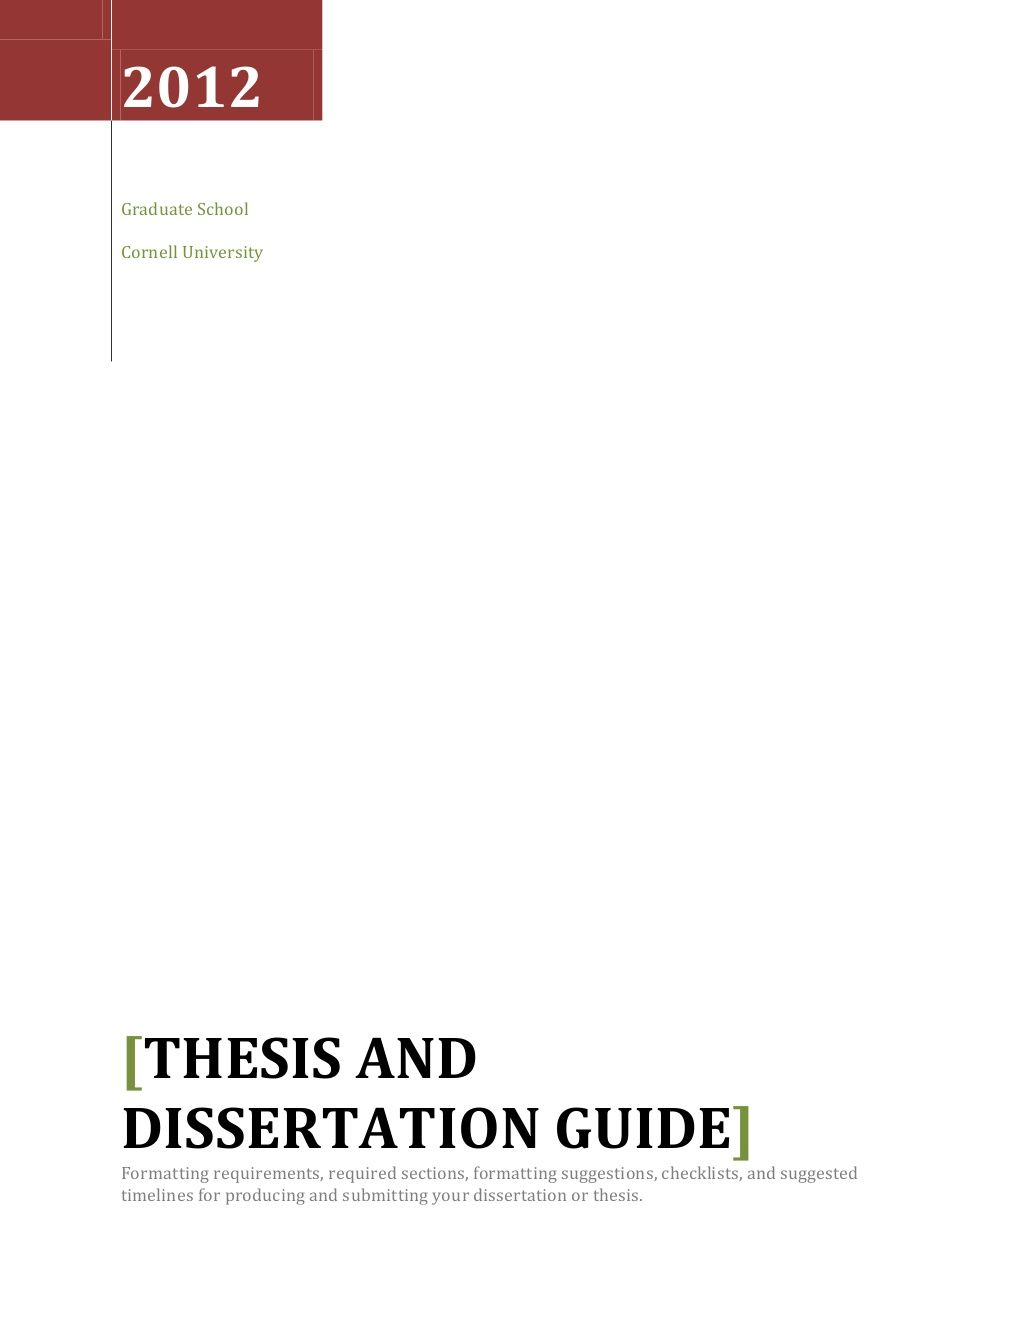 nyu gsas dissertation formatting guide